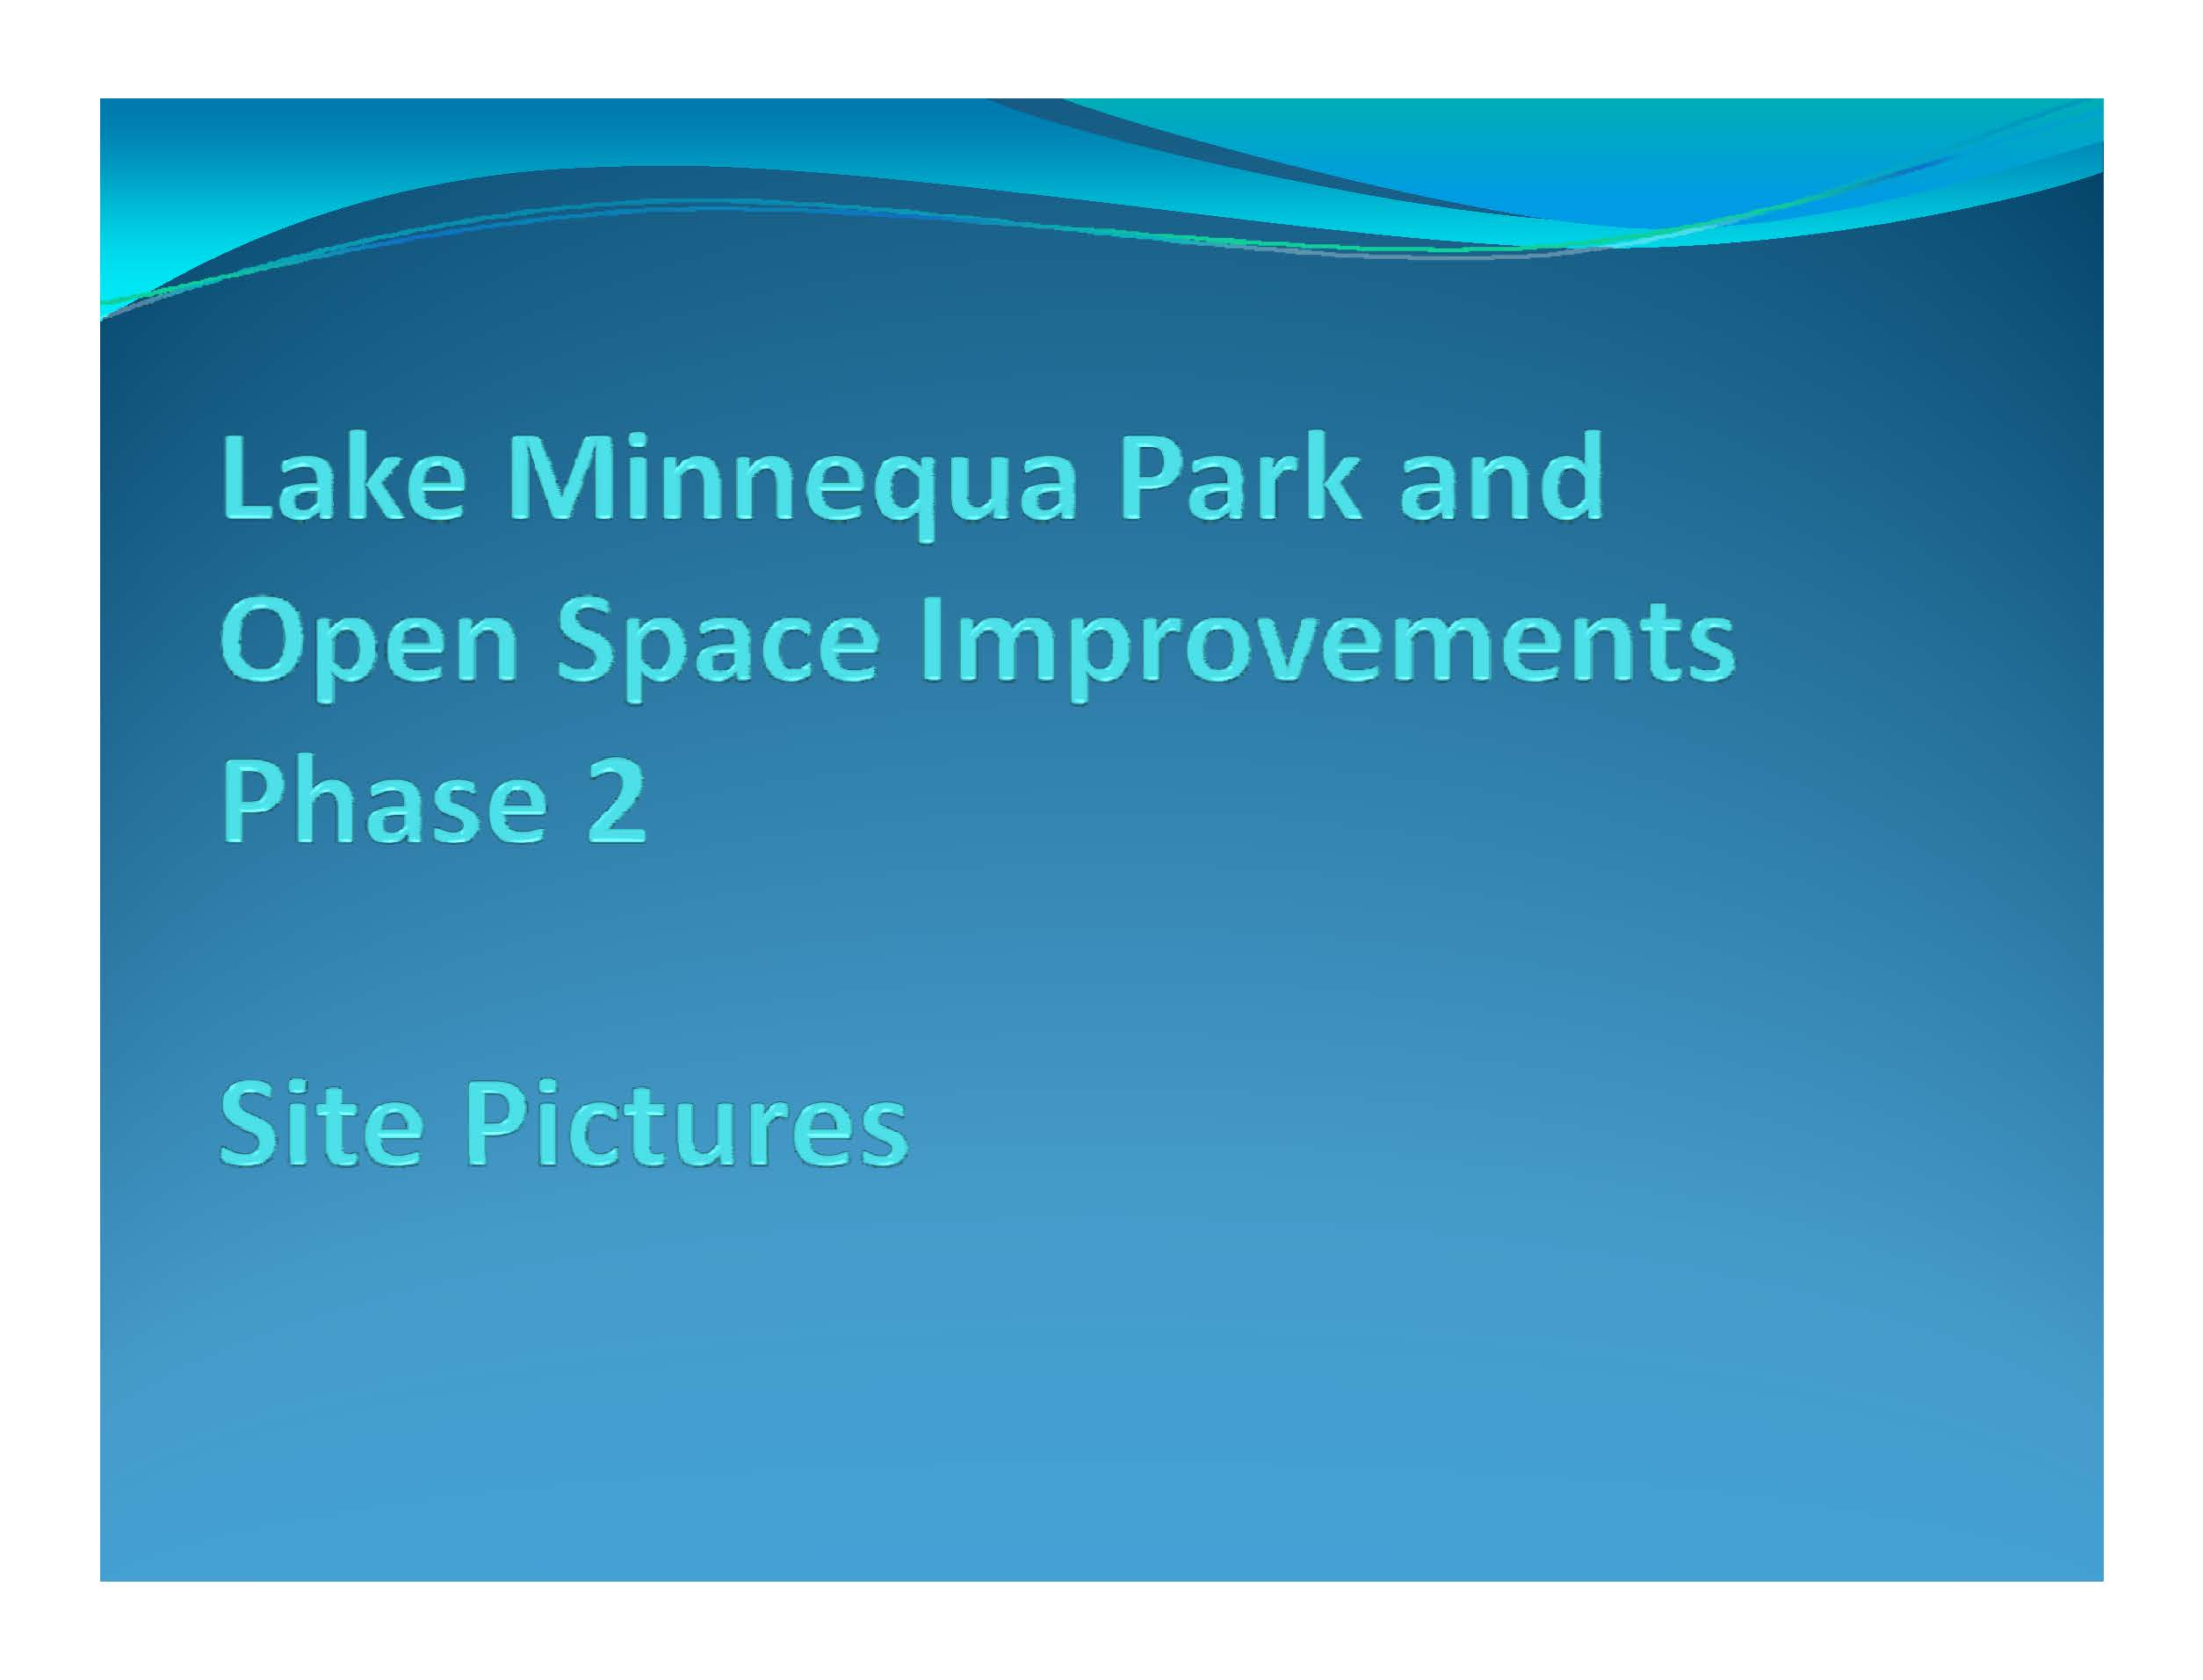 099Lake Minnequa Park and Open Space Improvements